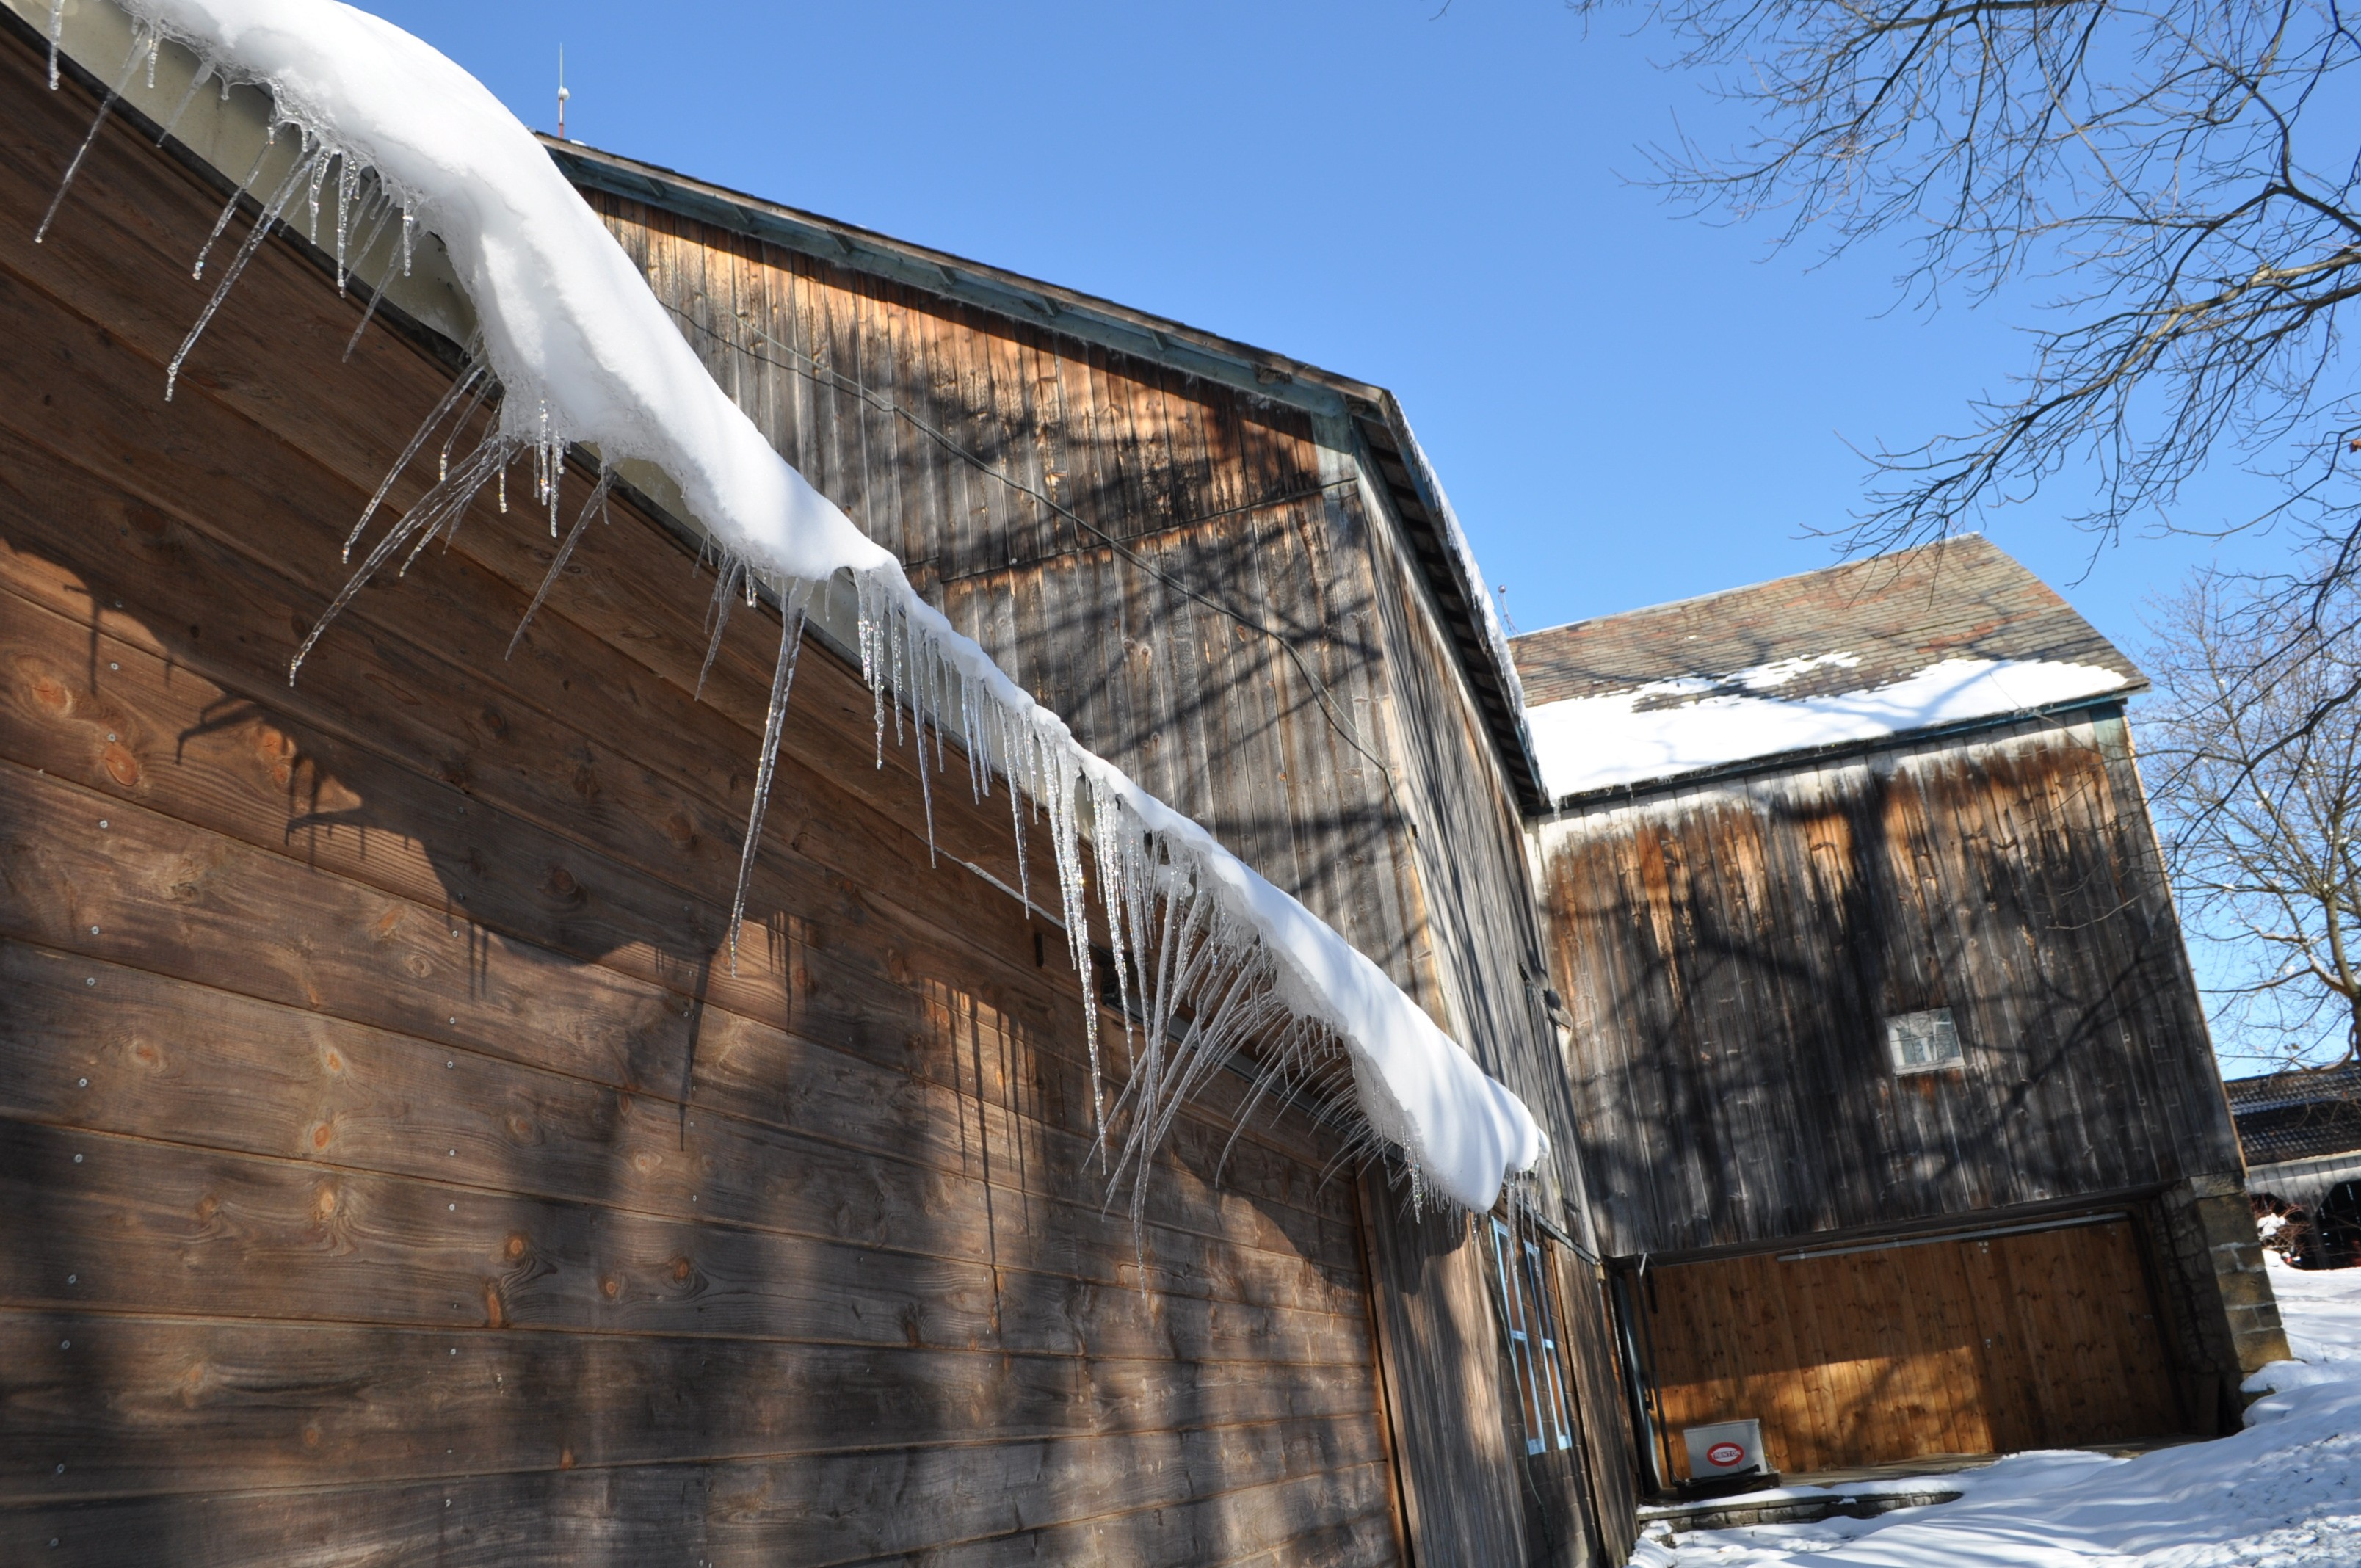 Wind blown Icicles